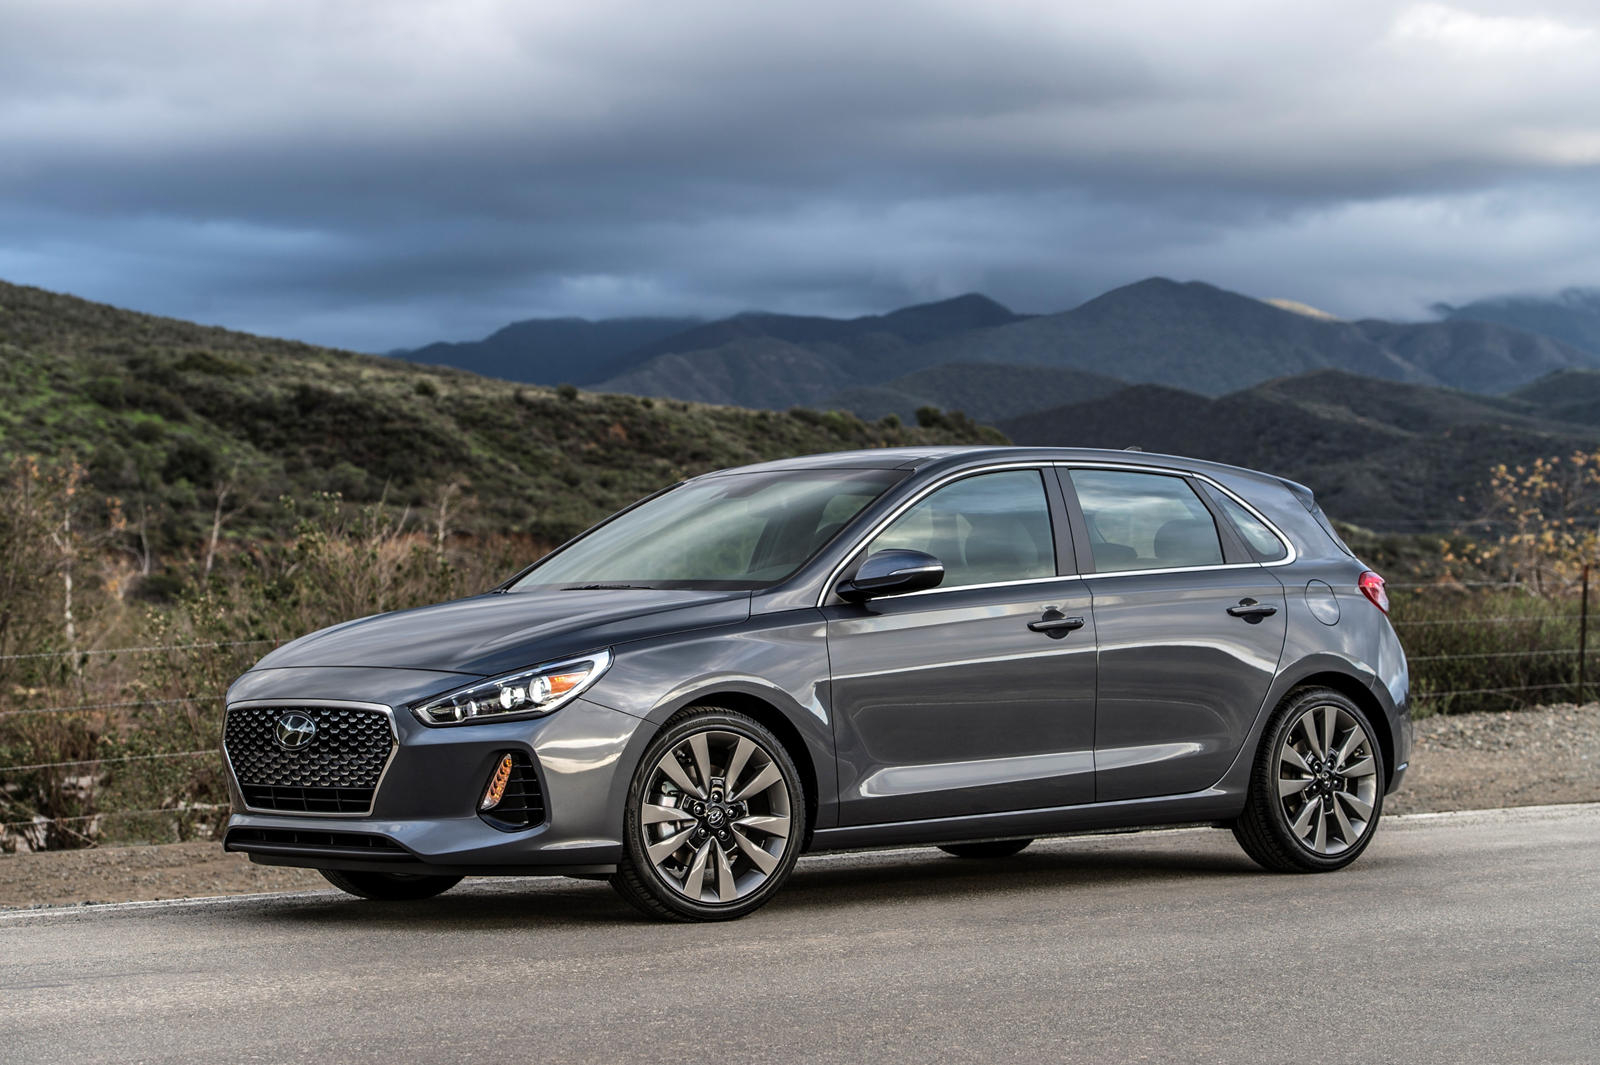 2020 Hyundai Elantra Gt: Review, Trims, Specs, Price, New